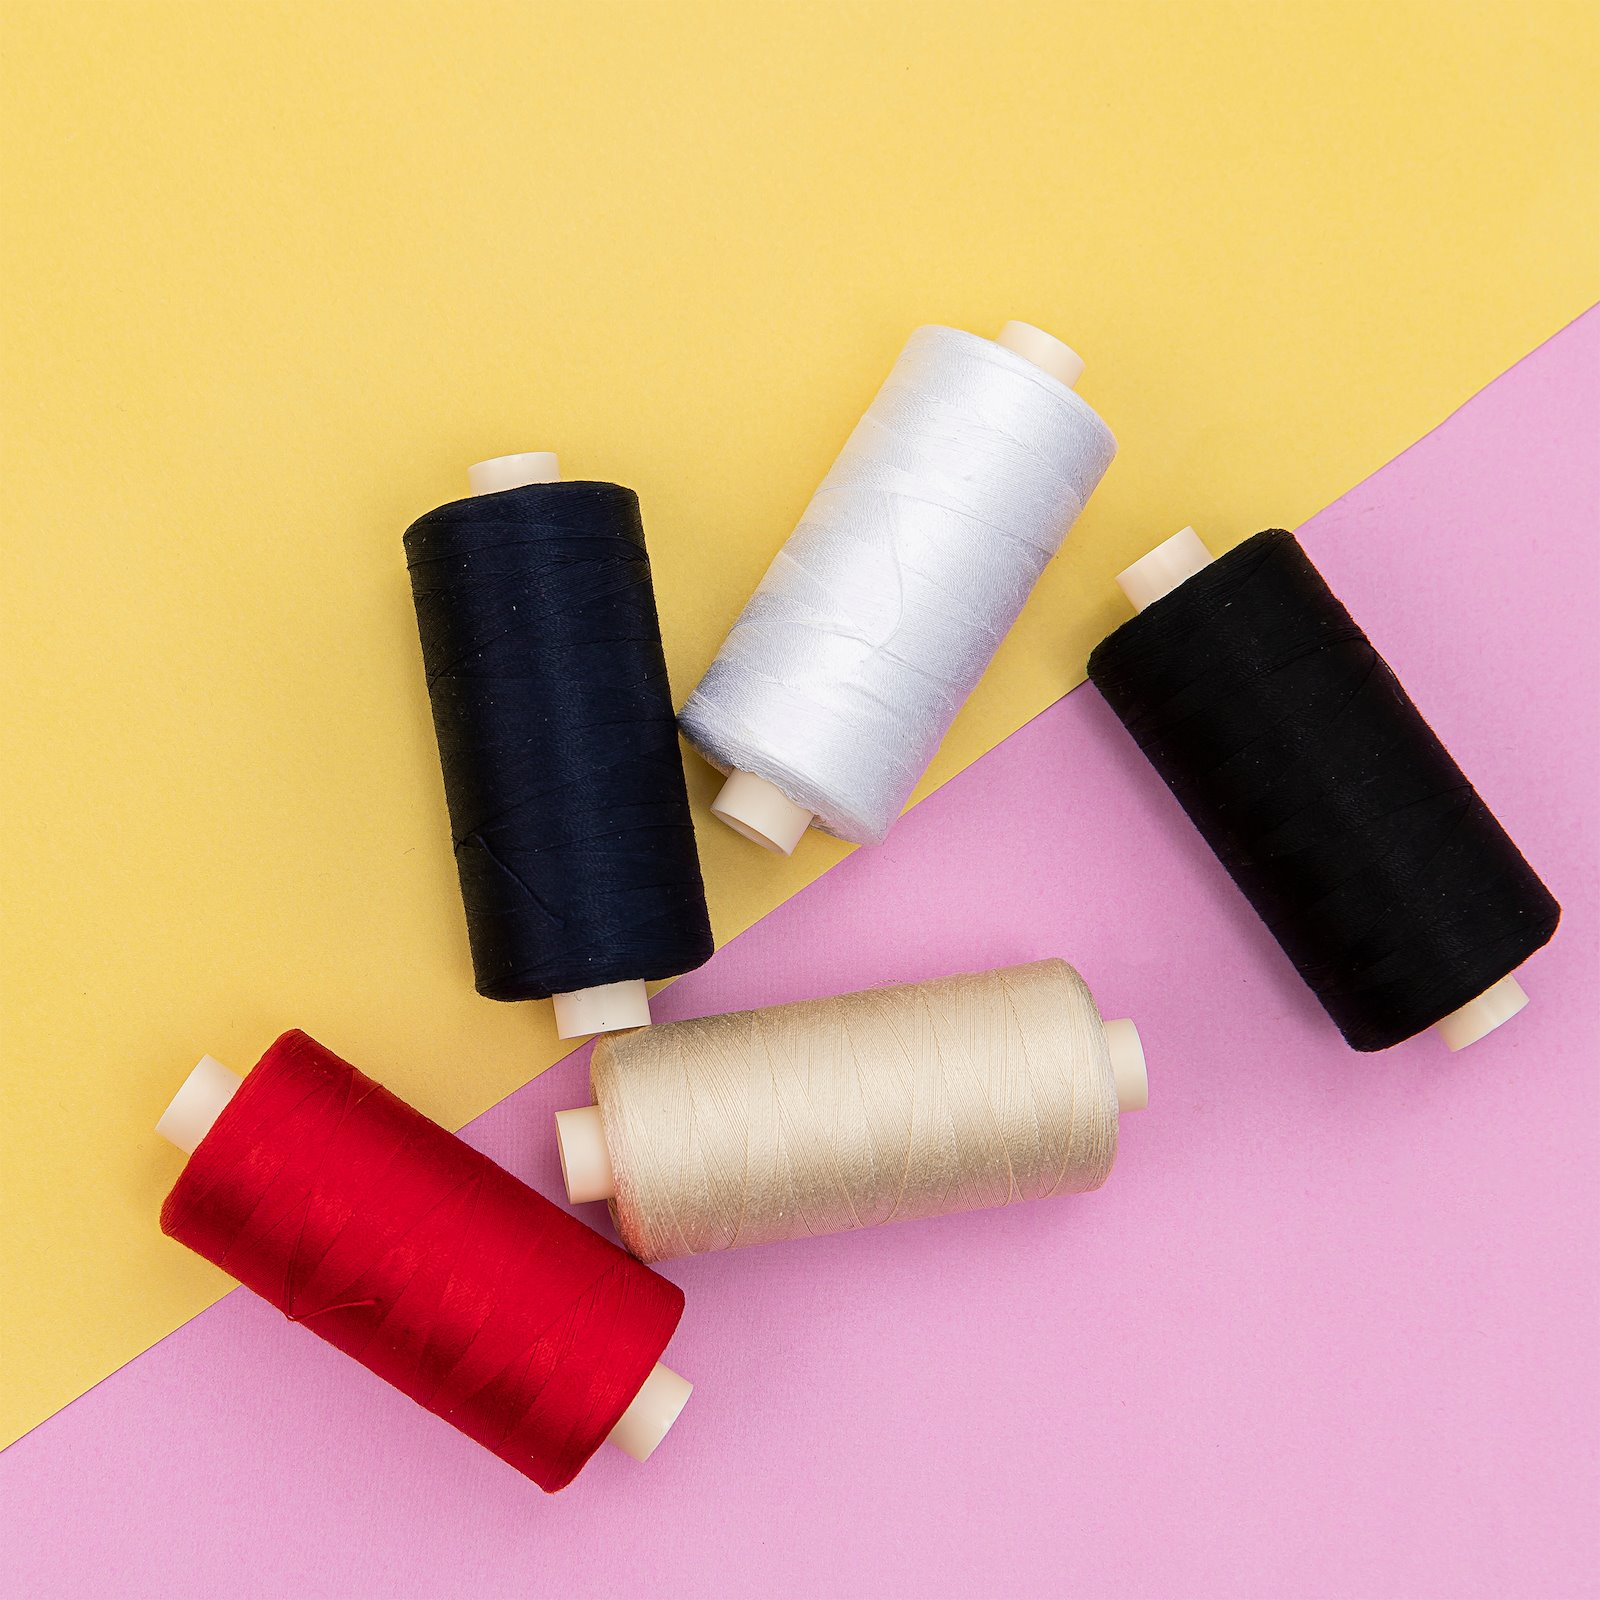 Sewing thread cotton red 1000m 14011_14023_14001_14002_14043_bundle